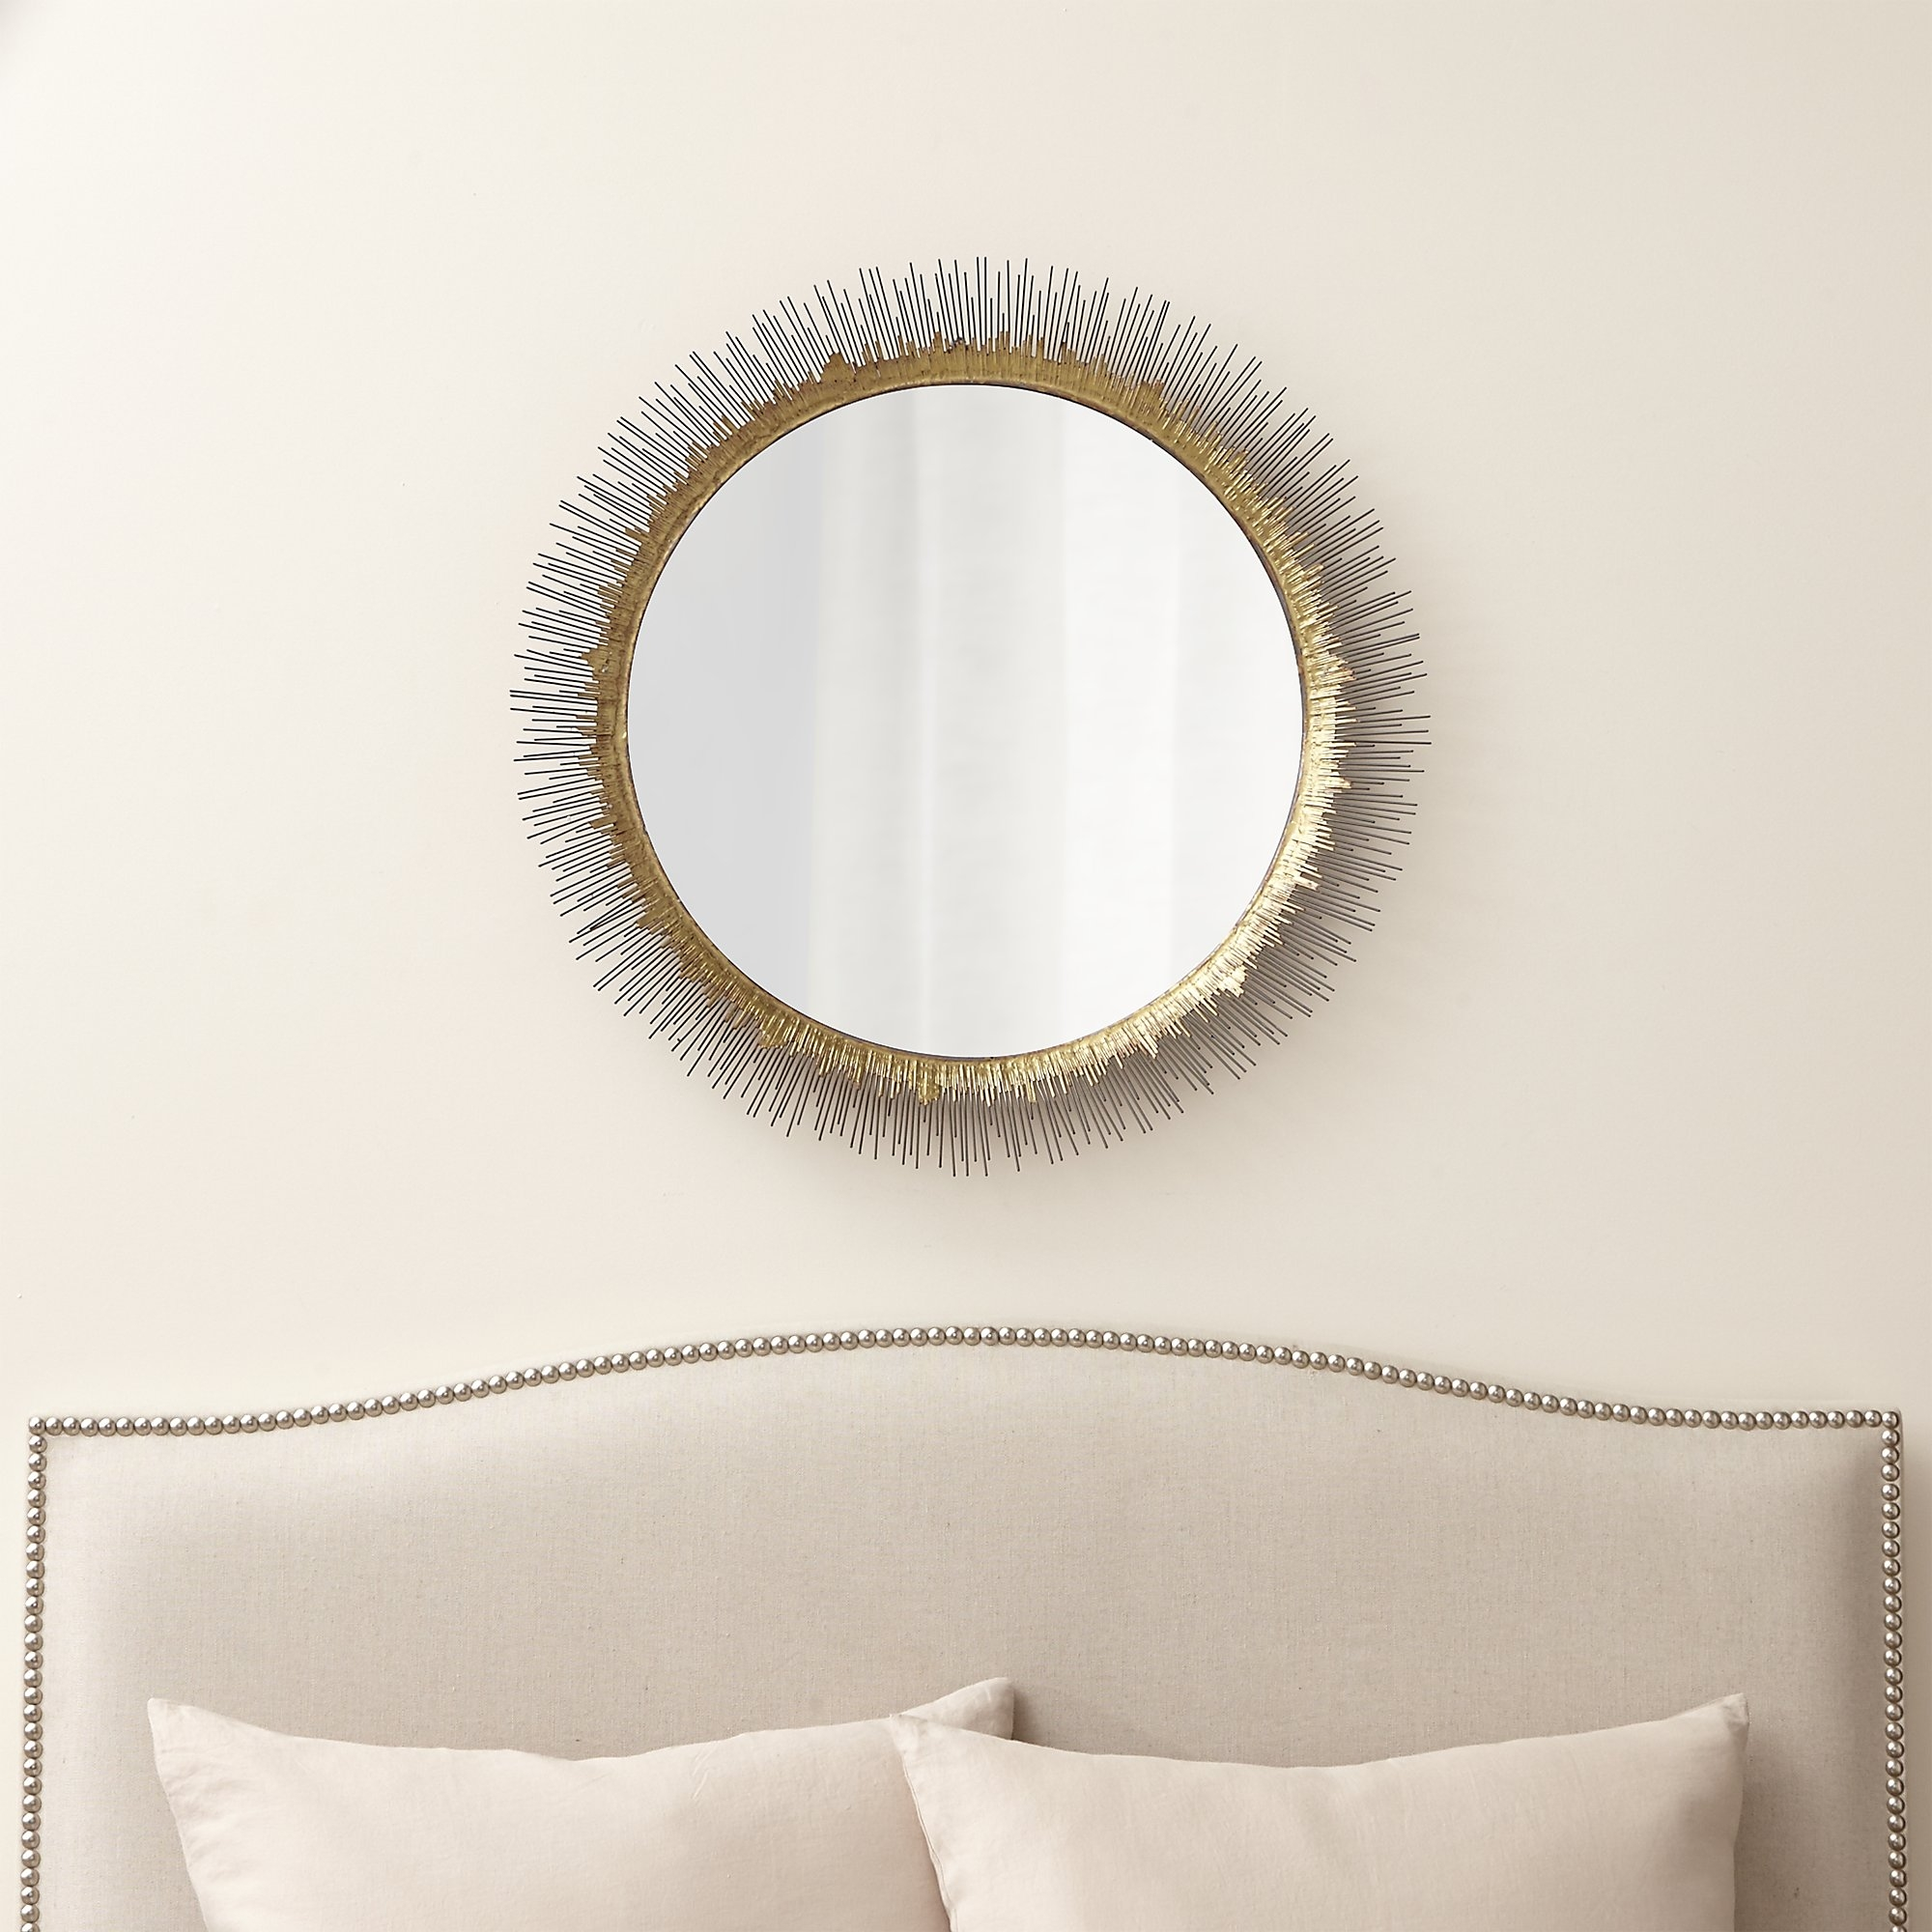 Clarendon Large Round Wall Mirror Crate And Barrel Crate And In Clarendon Mirror (Image 5 of 15)